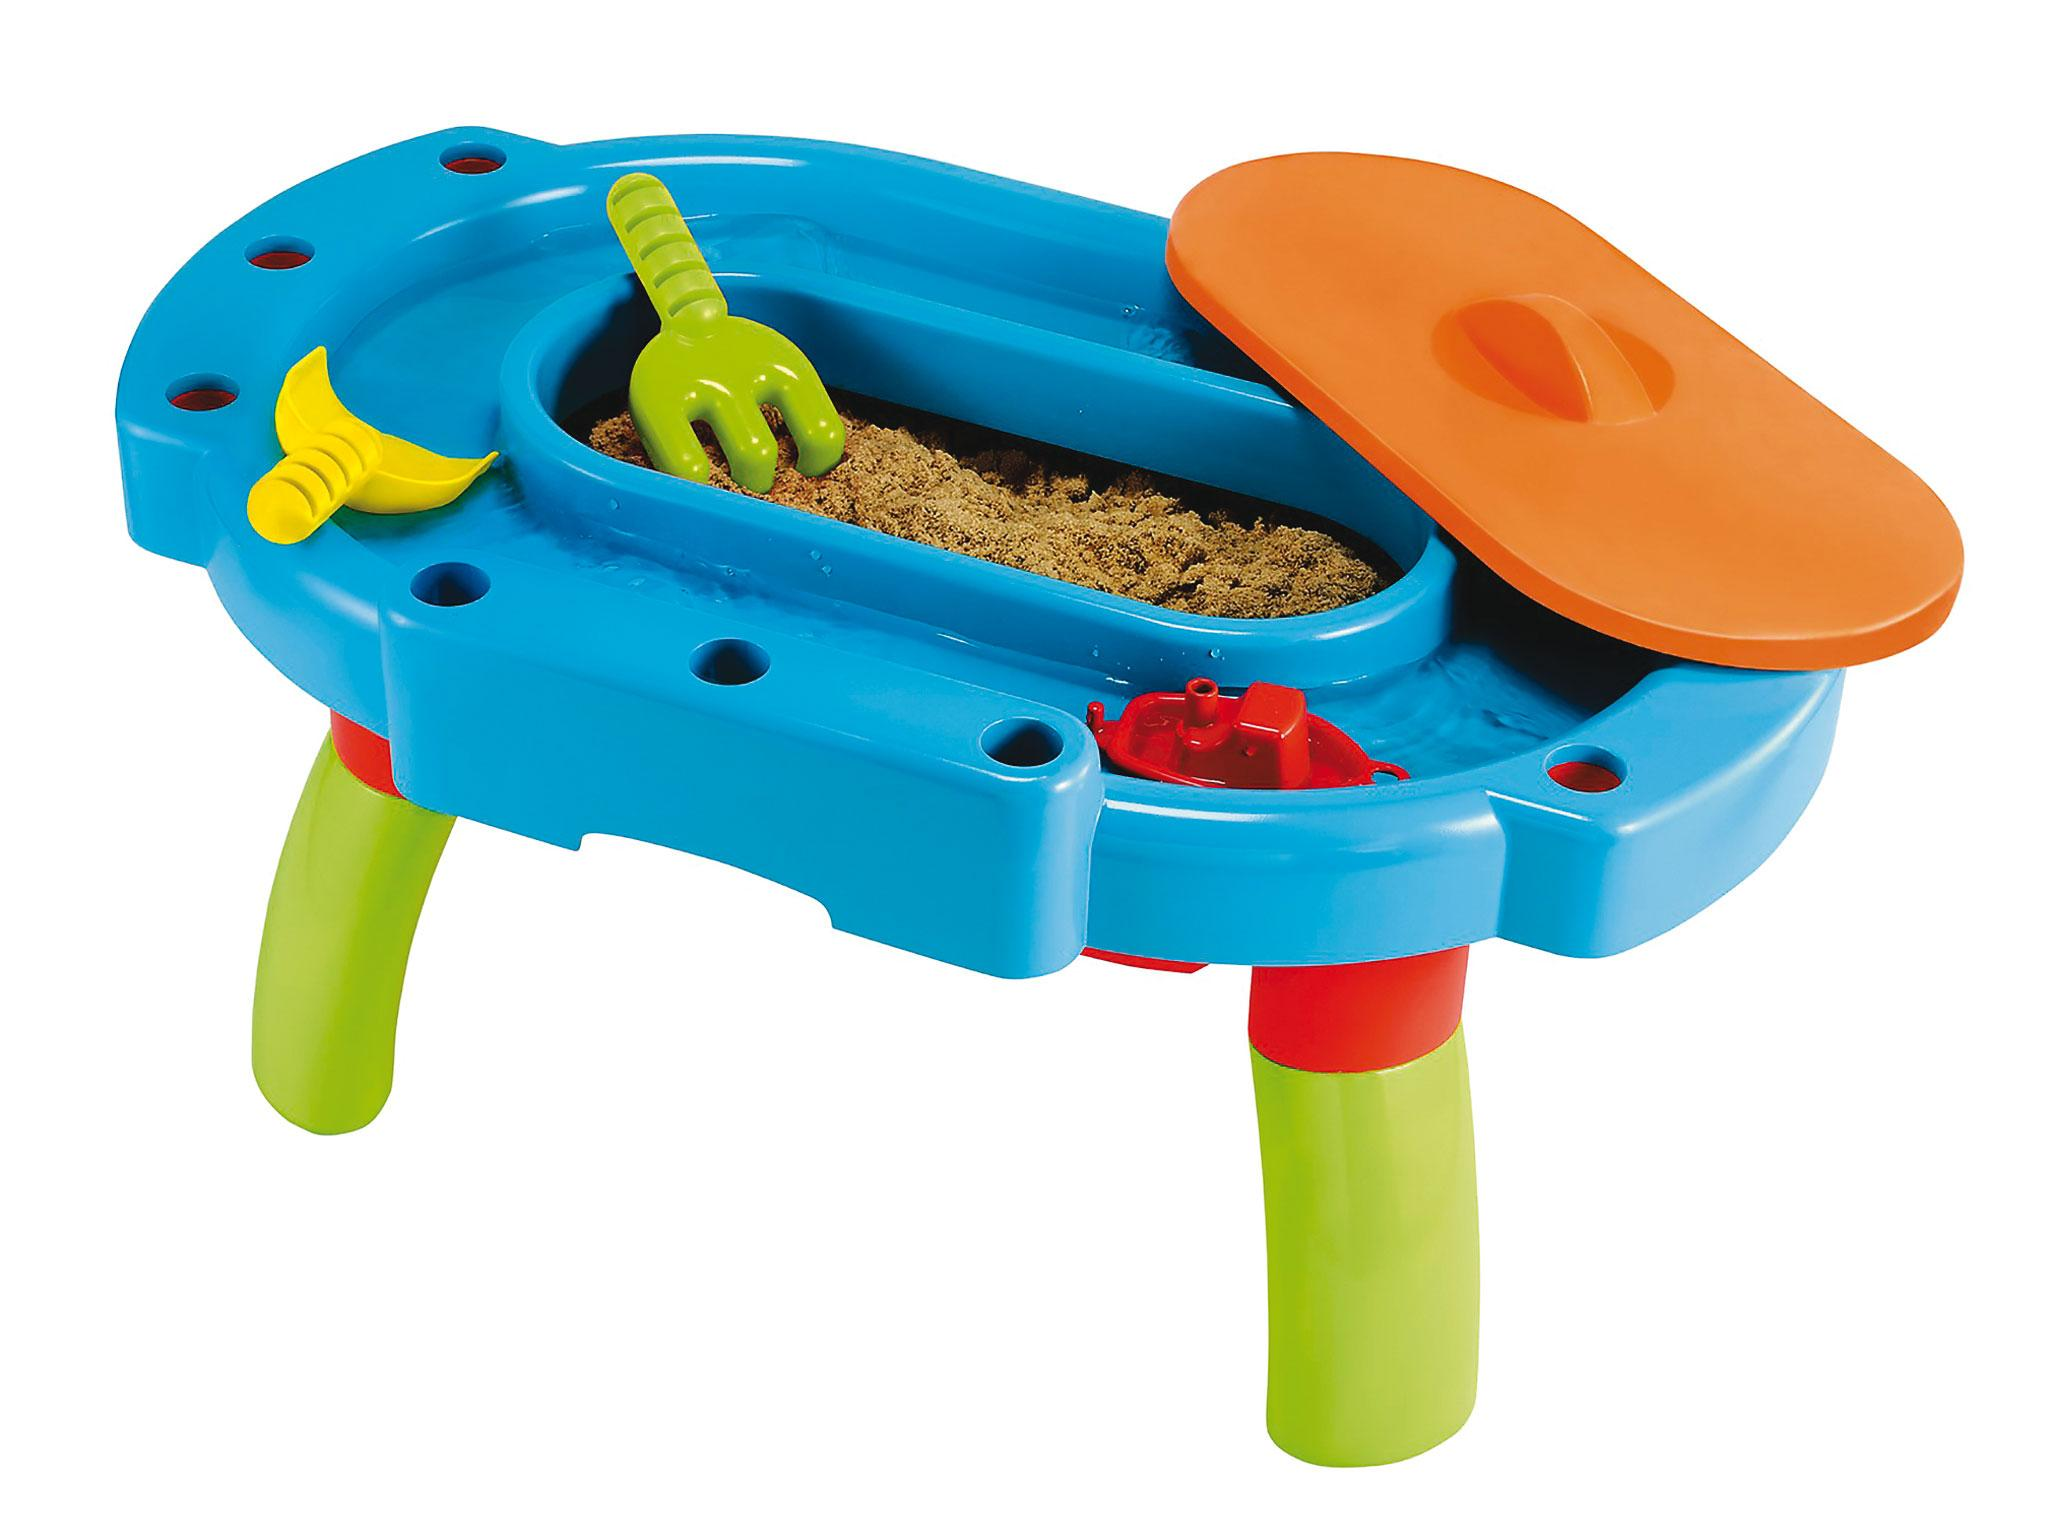 10 best sandpits | The Independent